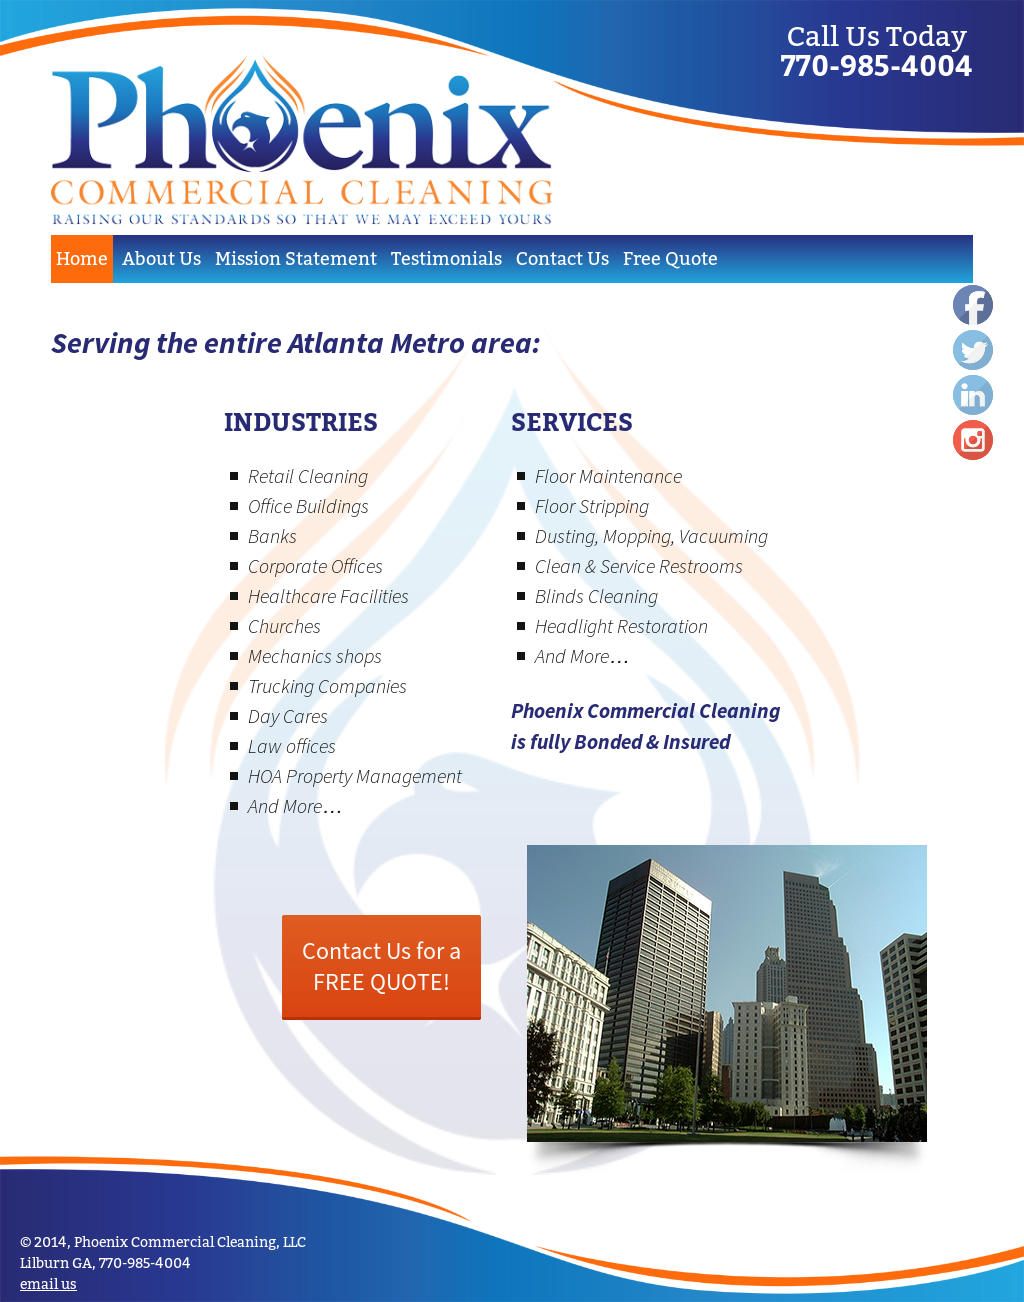 Phoenix Commercial Cleaning Competitors, Revenue and